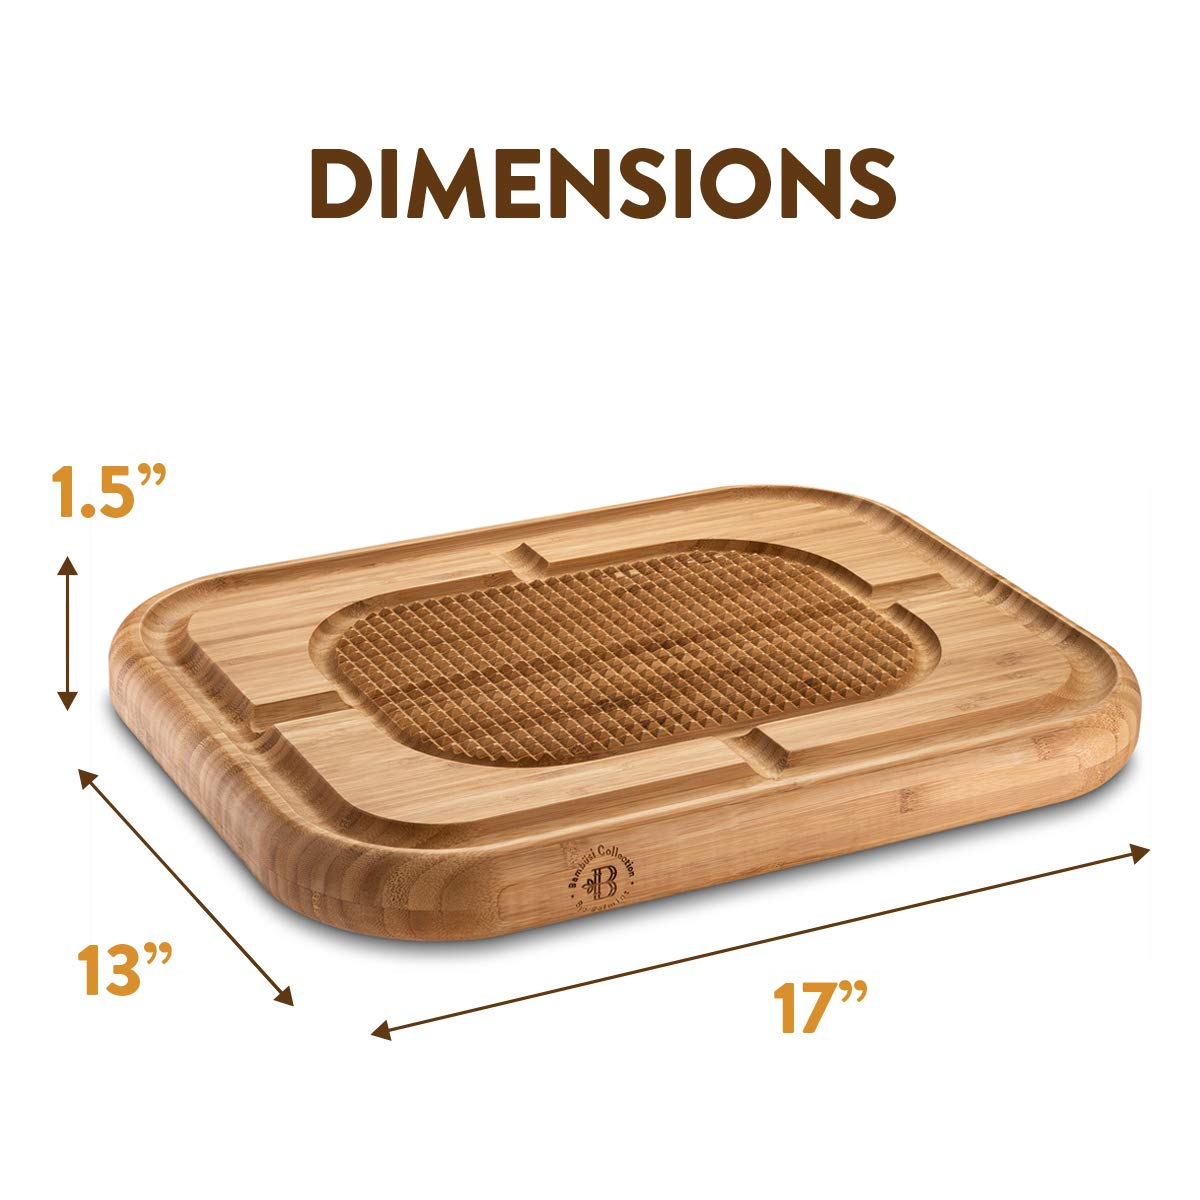 Bambusi Large Carving Cutting Board - 100% Natural Bamboo Meat Serving Tray with Deep Juice Grooves | Stabilizes Beef & Poultry While Chopping | Great Father's Day Gift Idea by Bambüsi (Image #2)